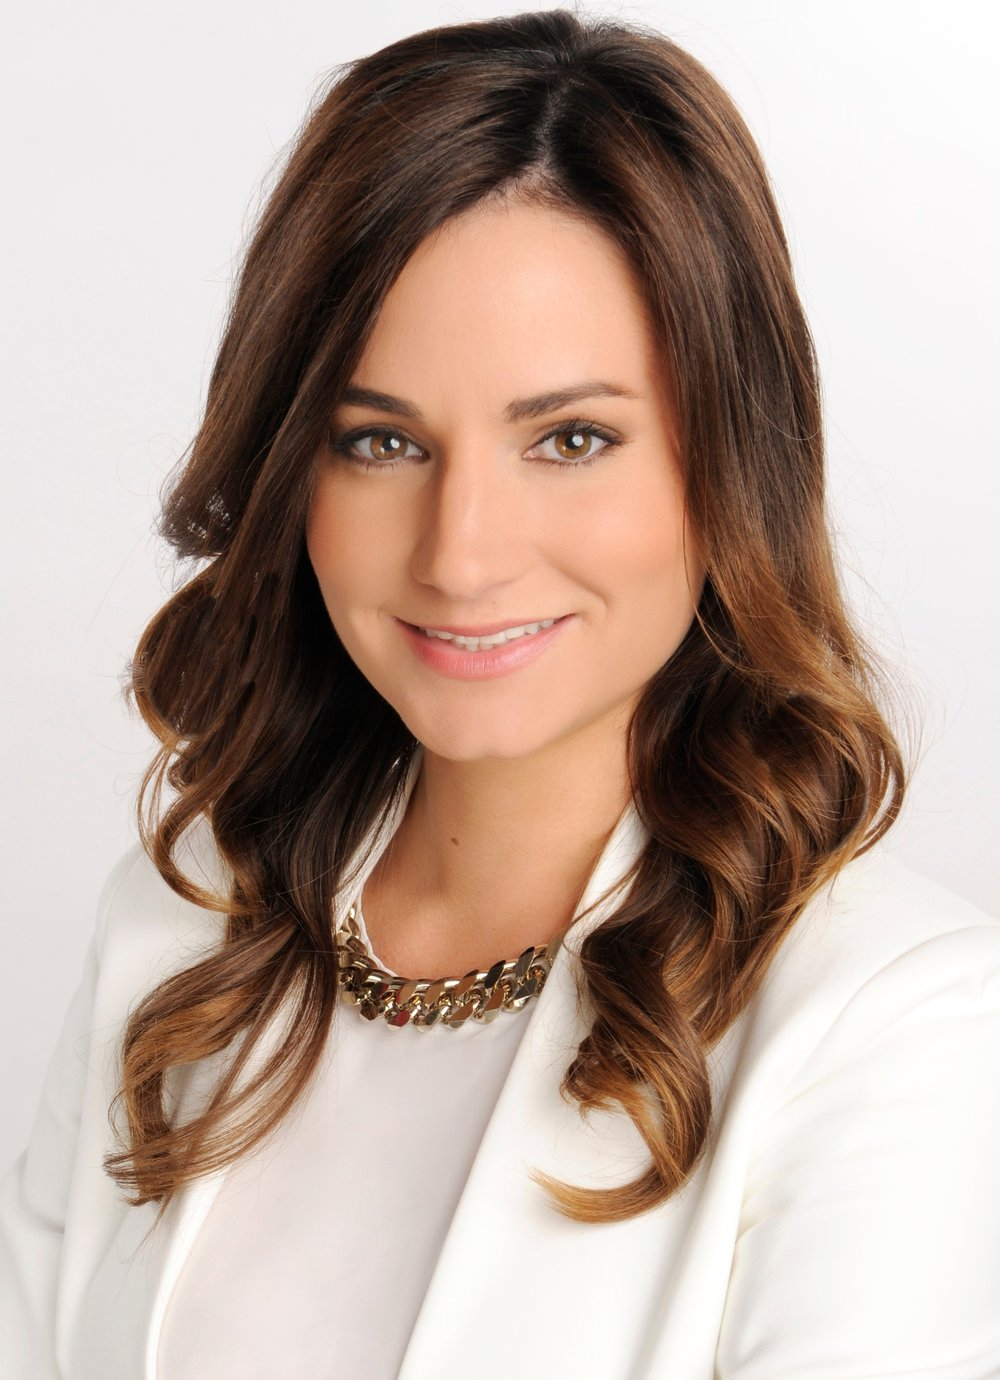 1 Hotel & Homes Appoints Douglas Elliman's Tracy Galya As New Residential Sales Director